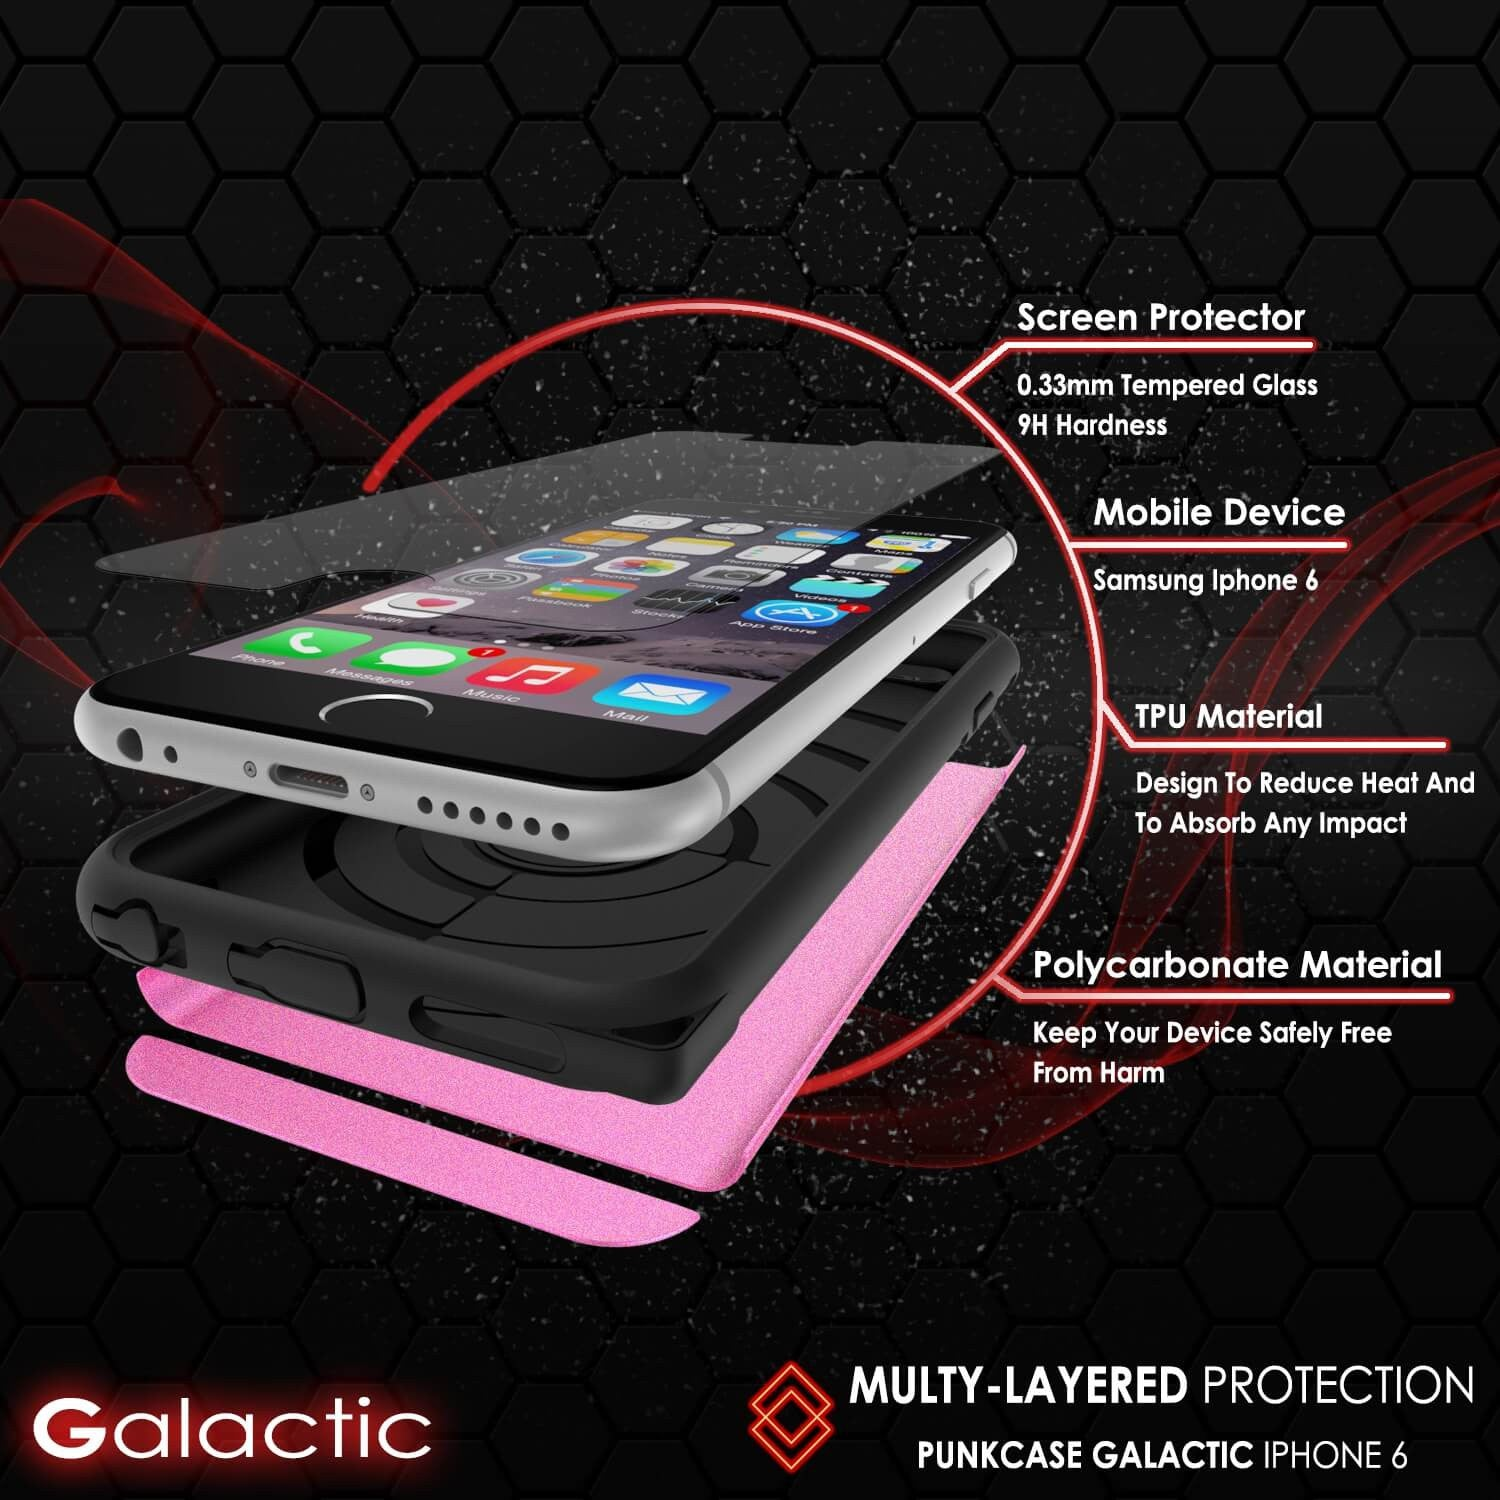 iPhone 6s Plus/6 Plus Case PunkCase Galactic Pink Slim w/ Tempered Glass Protector Lifetime Warranty